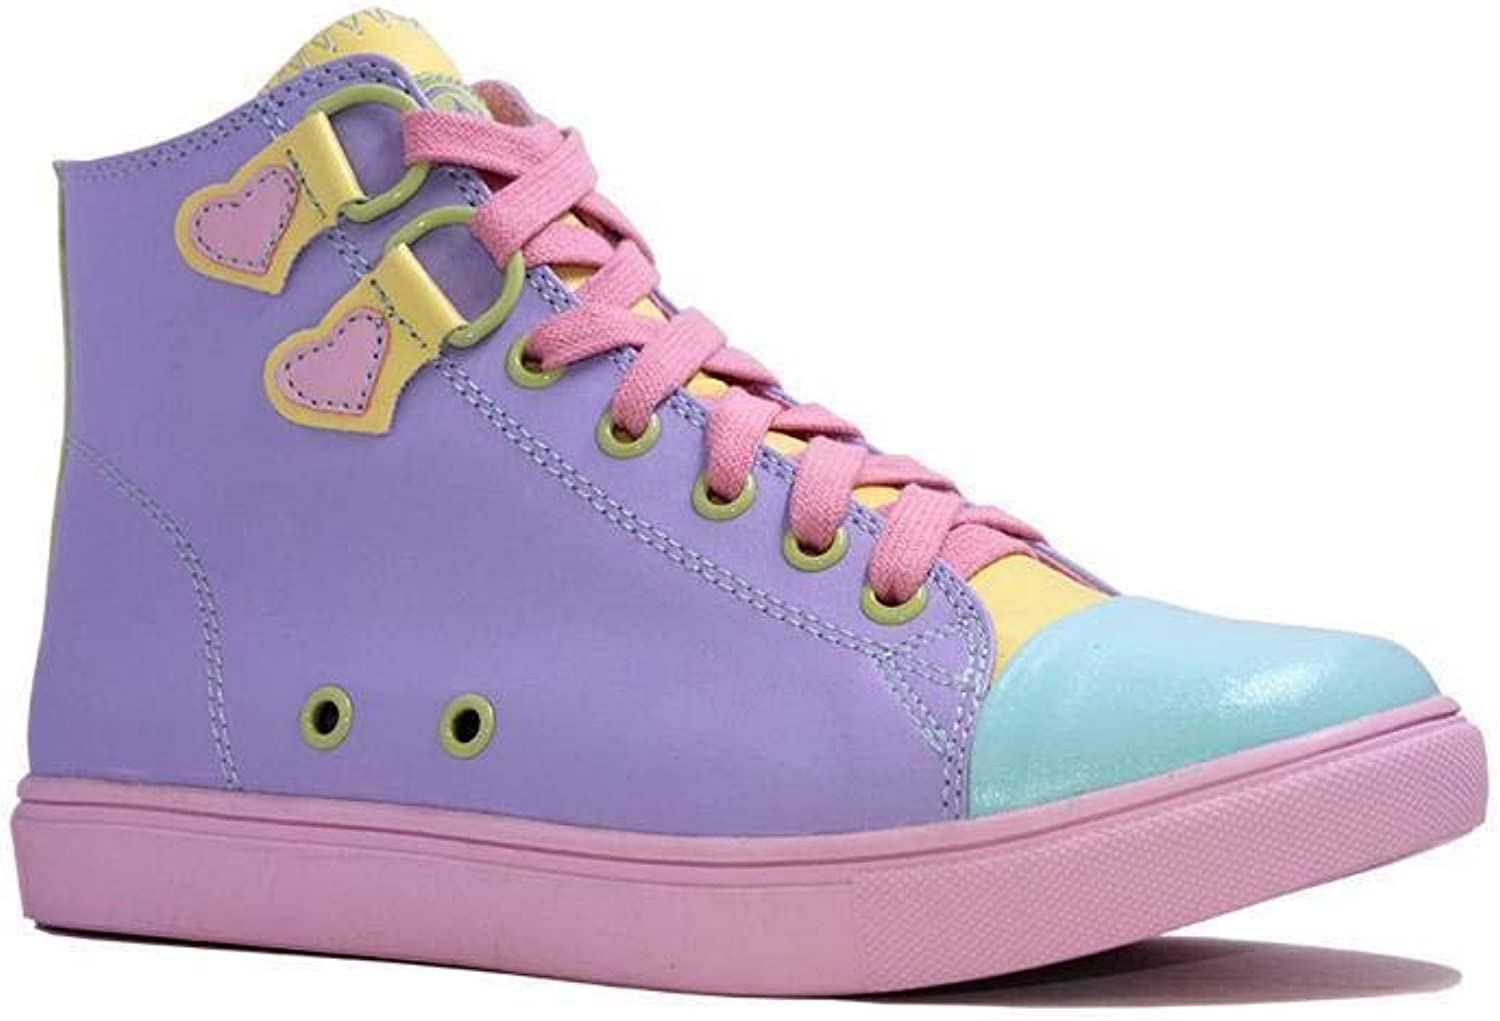 YRU STRANGE CVLT Chelsea Pastel Sneaker High Top Punk Rock